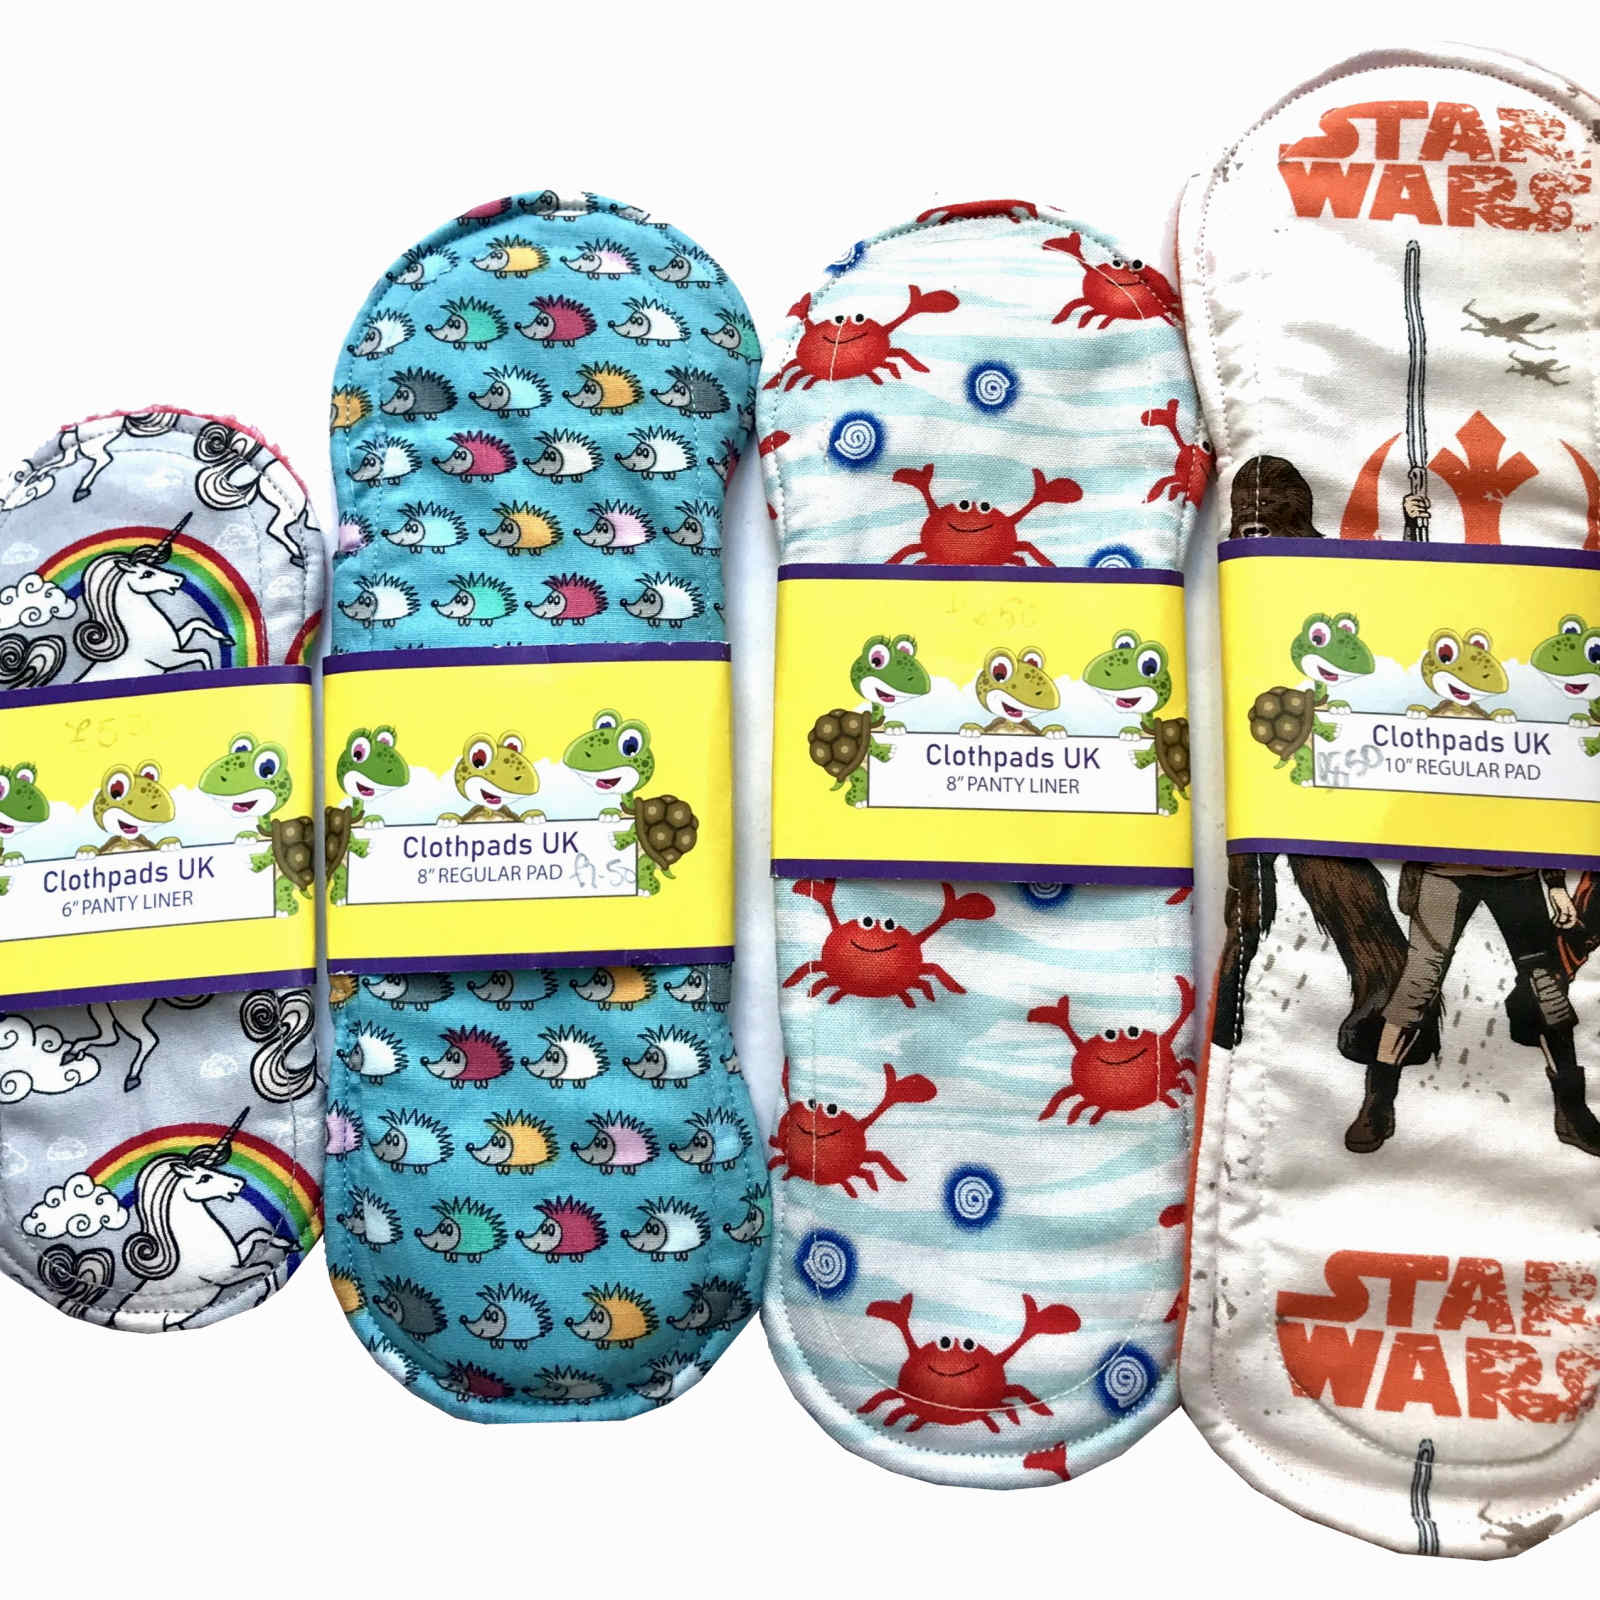 Product image for cloth pads uk